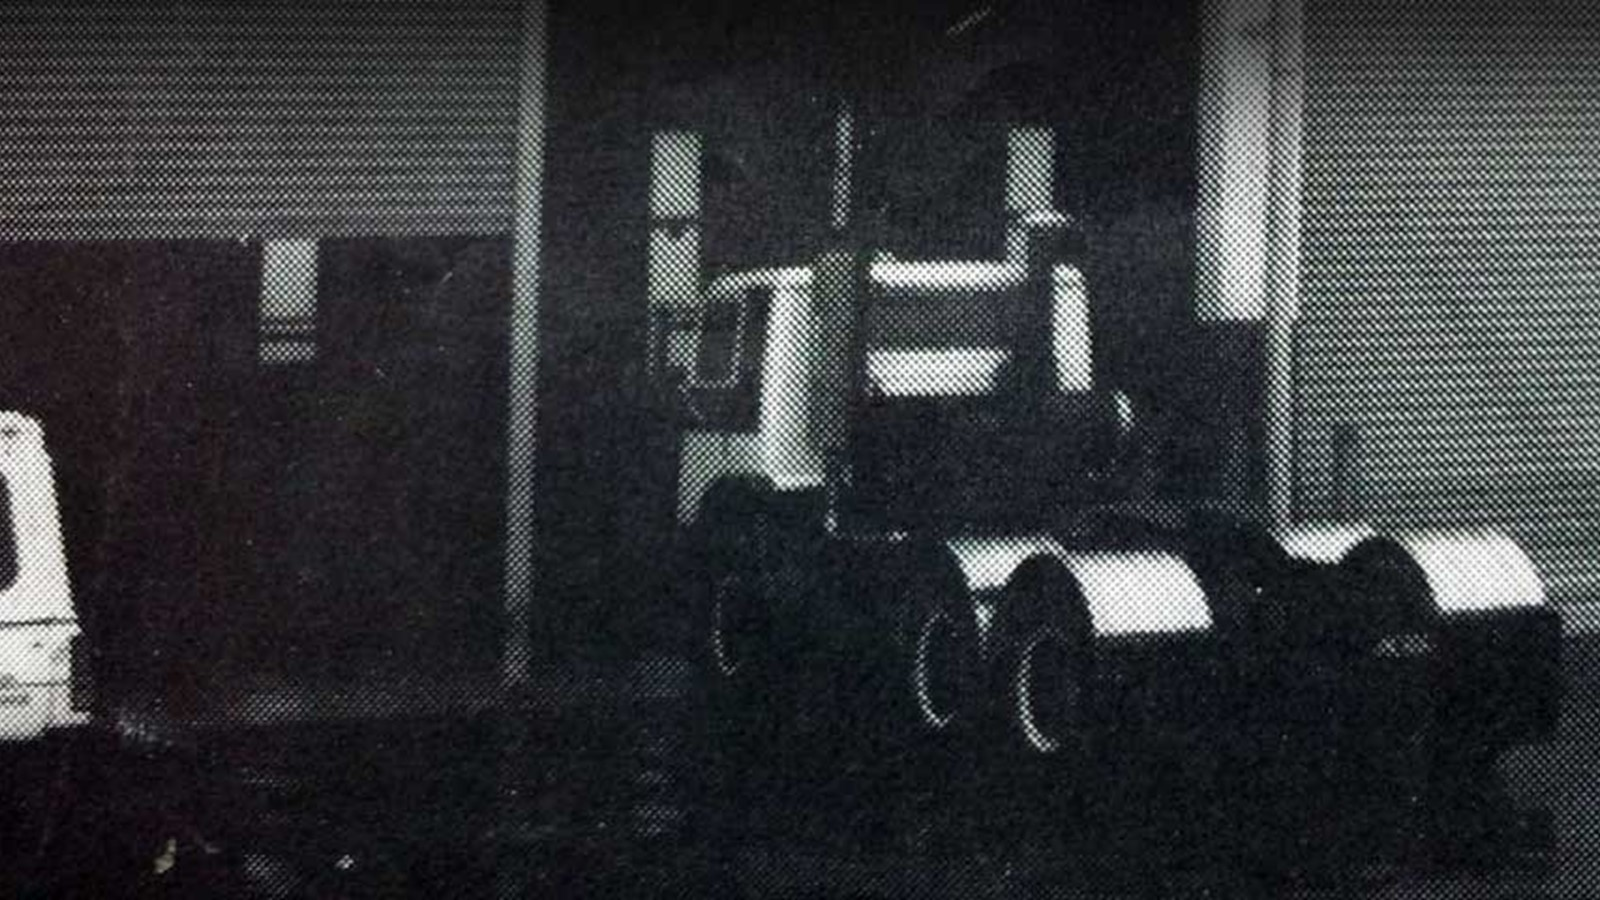 A Truck came in a Truckstops workshop for after-sales parts in 1985. The new branch opened in Christchurch, Taupo, Napier in 1985